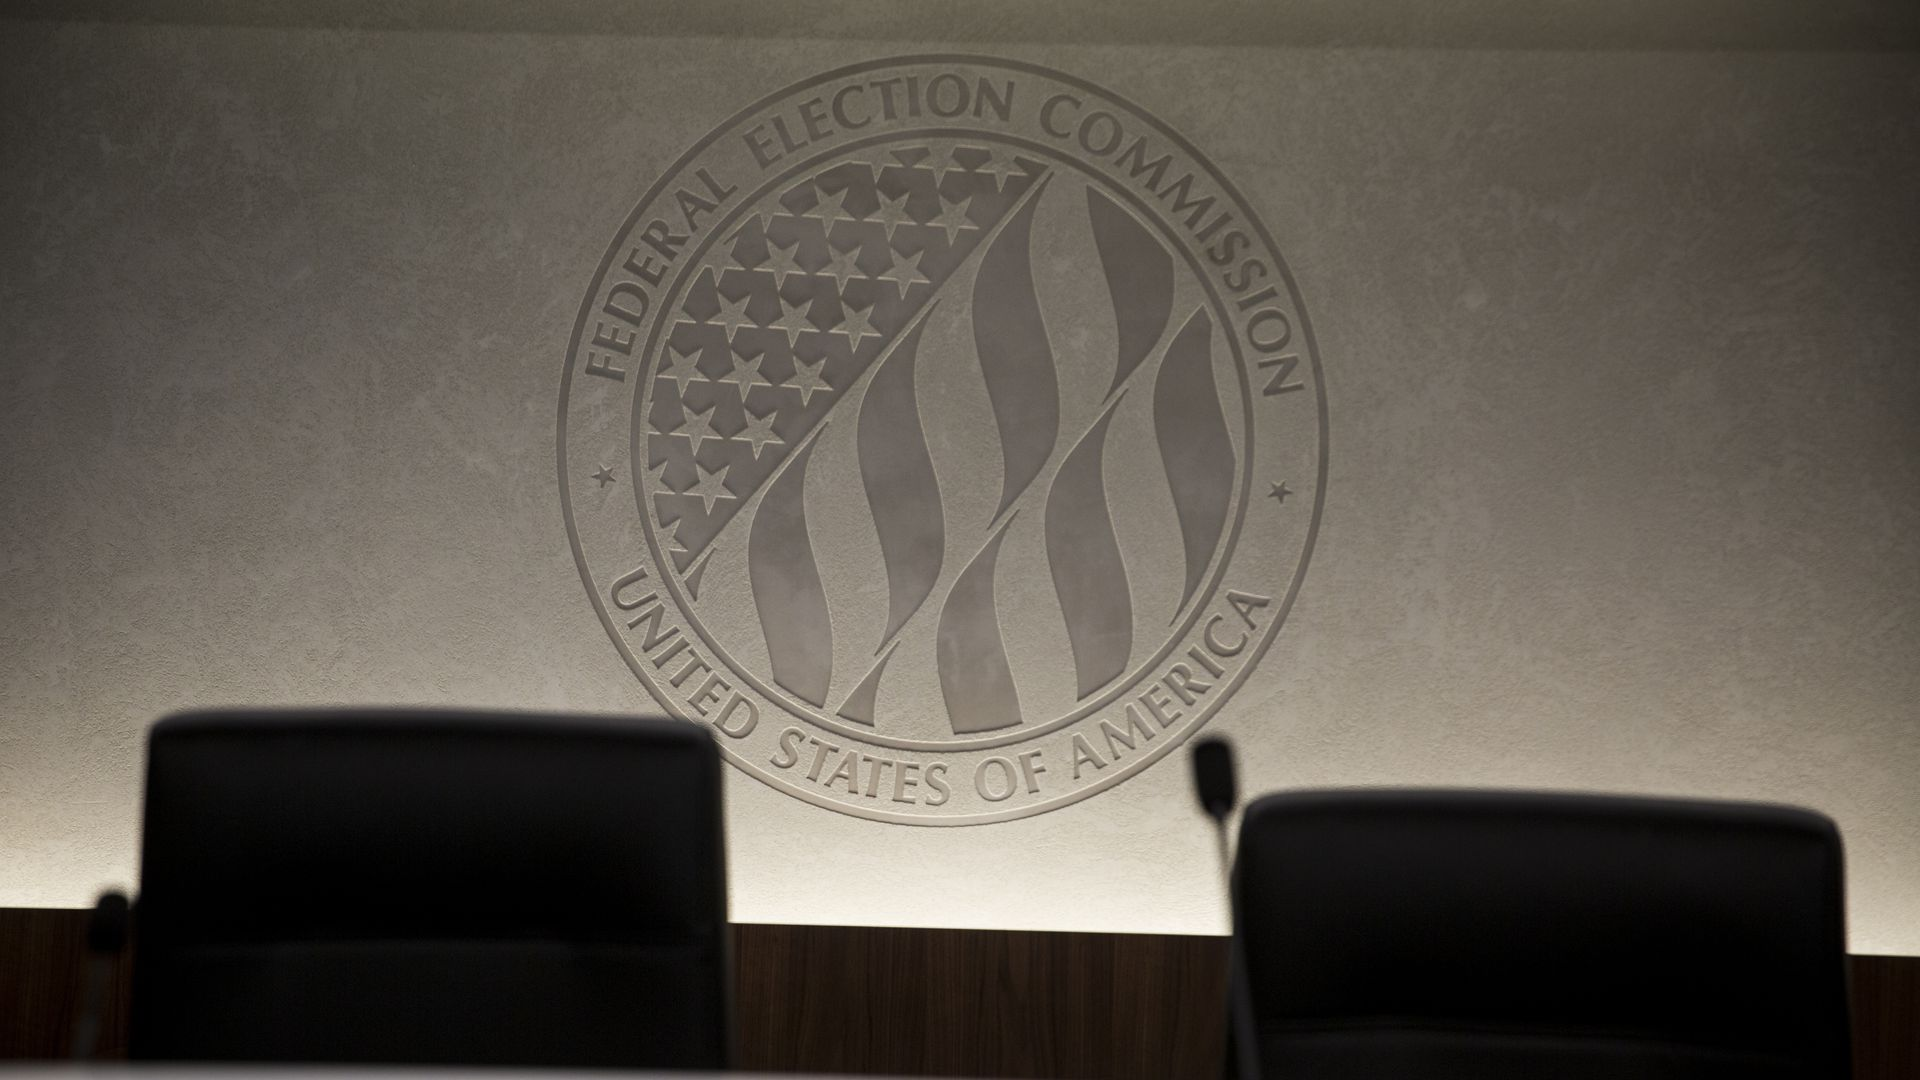 The federal election commission logo behind a set of empty chairs.